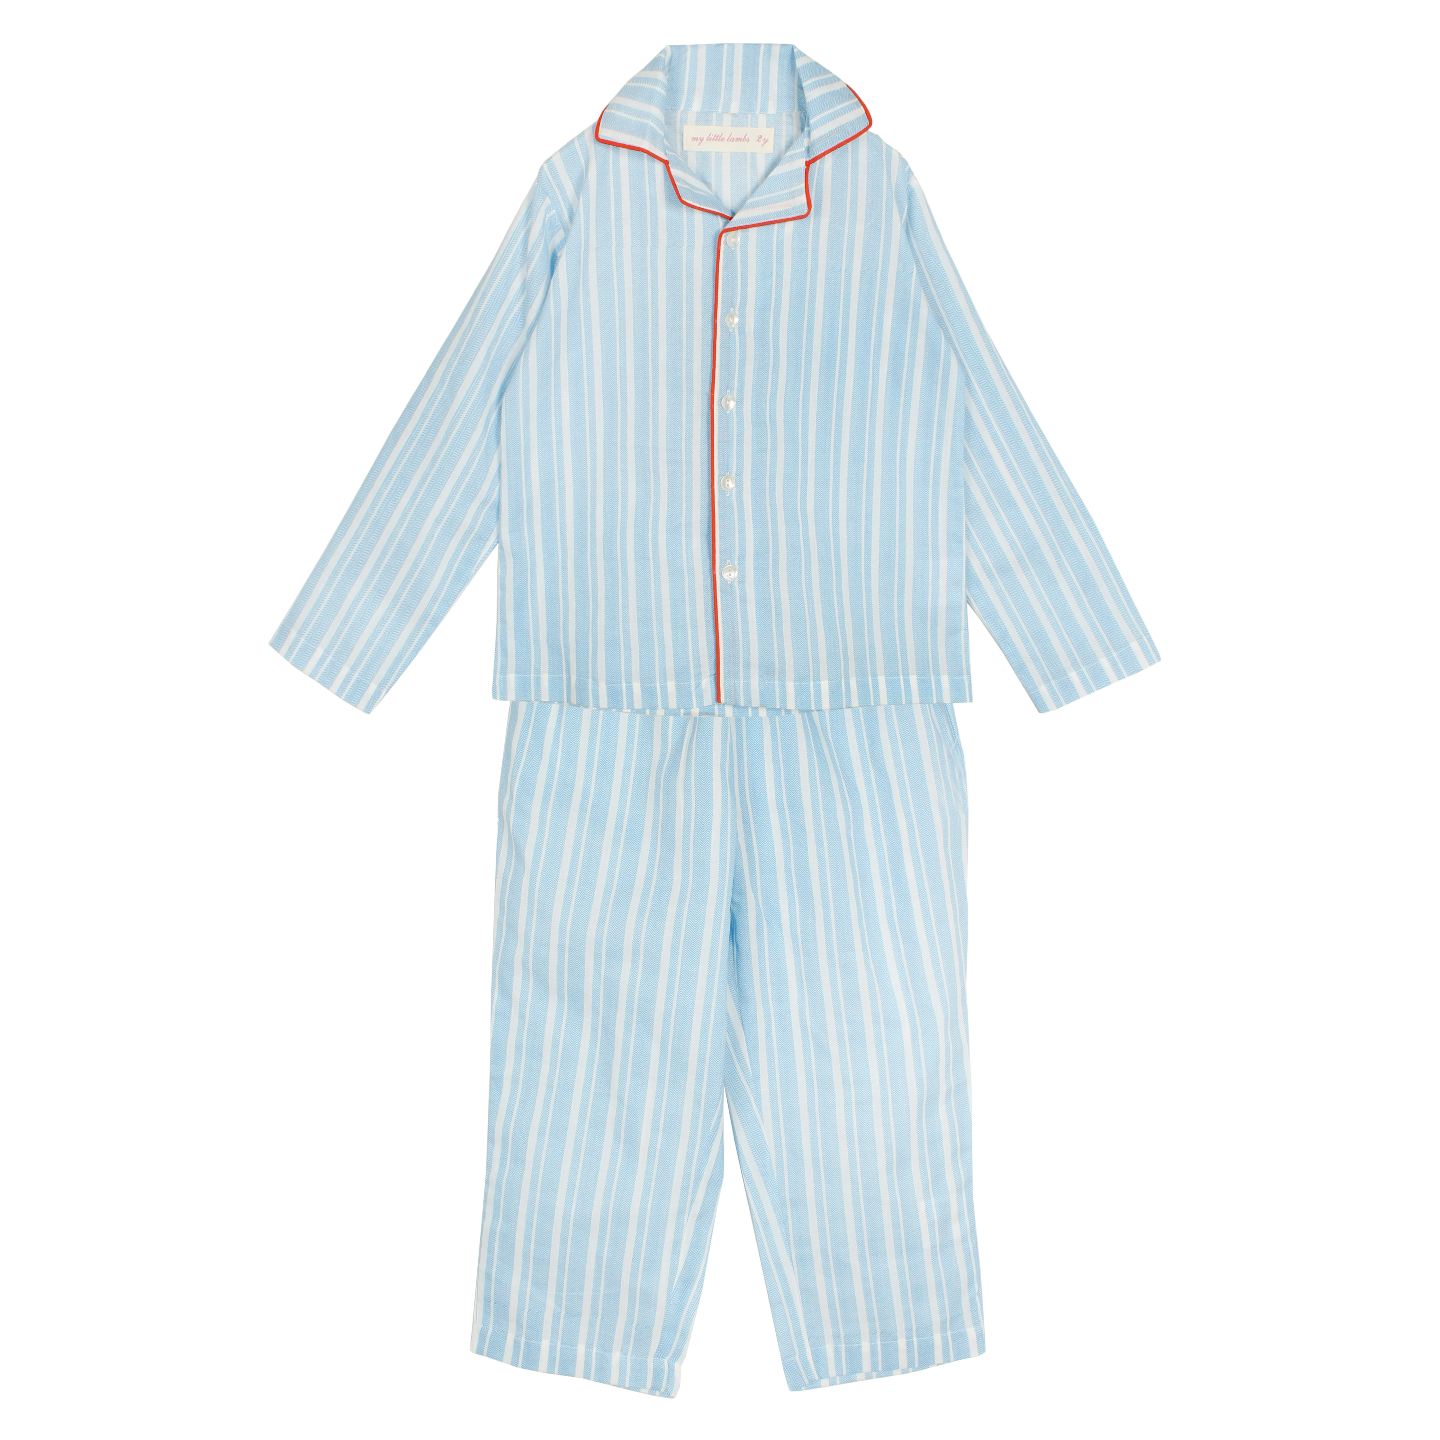 Zig Zag Stripe Blue Night Suit